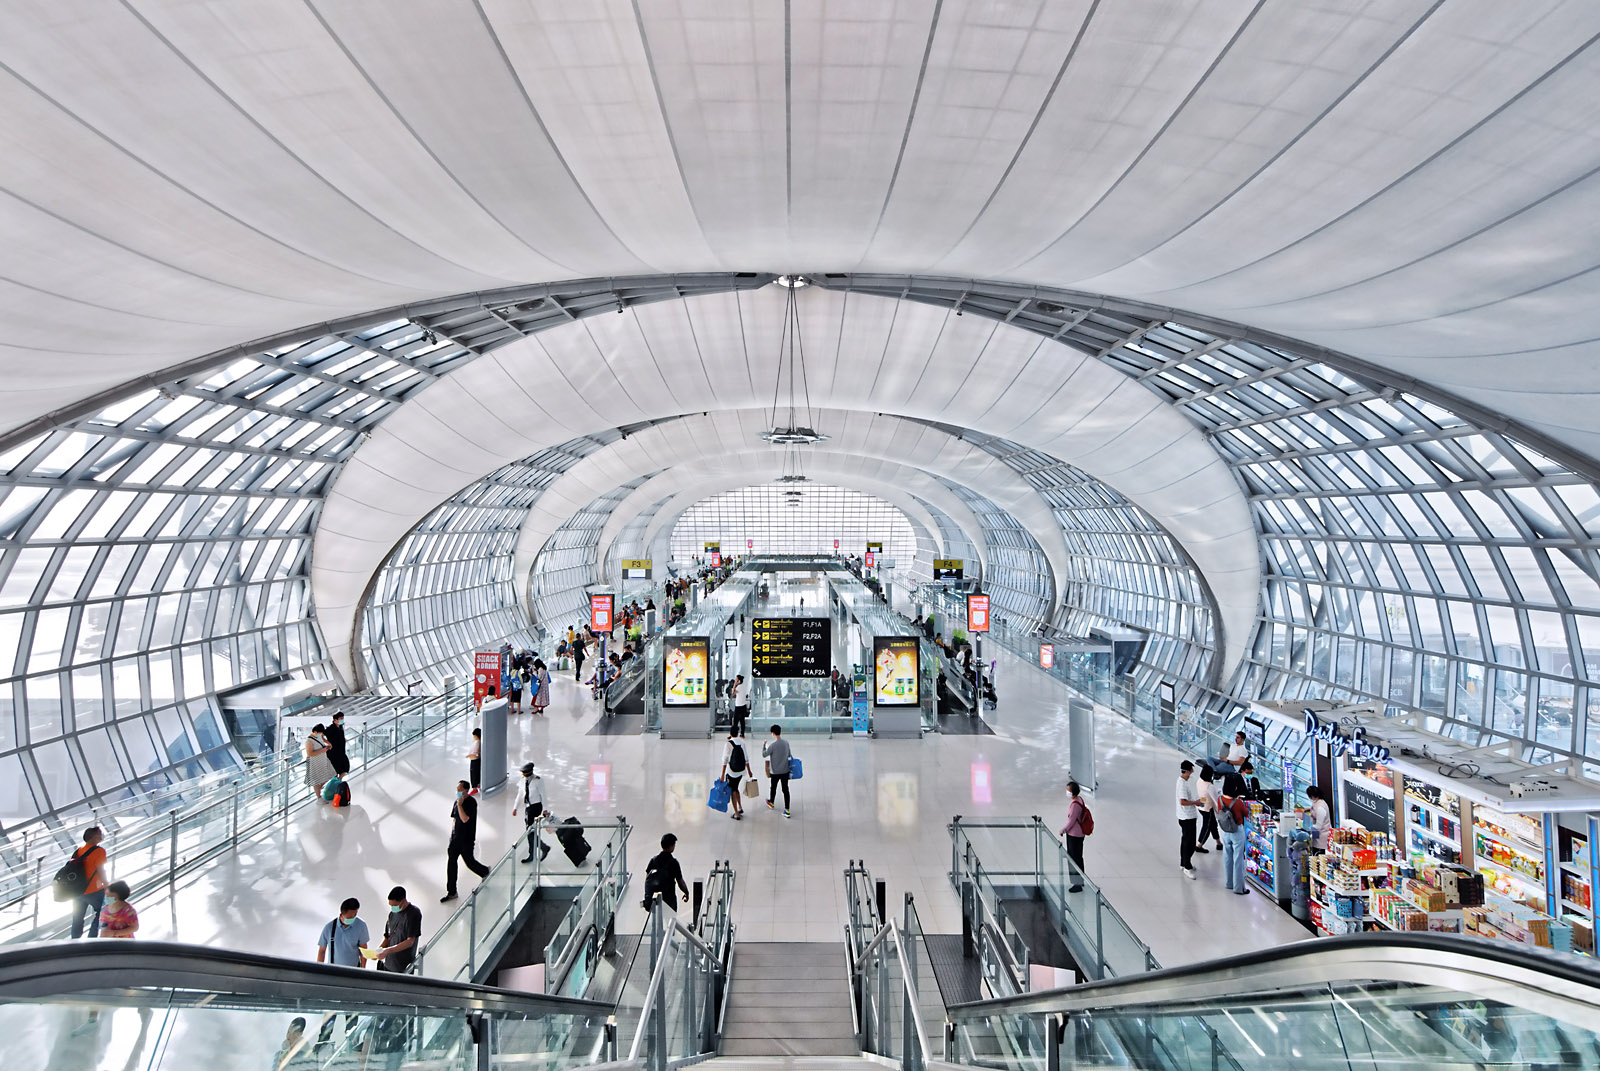 Paul Dingman photographs airports and transportation projects in Asia, China, and the Middle East